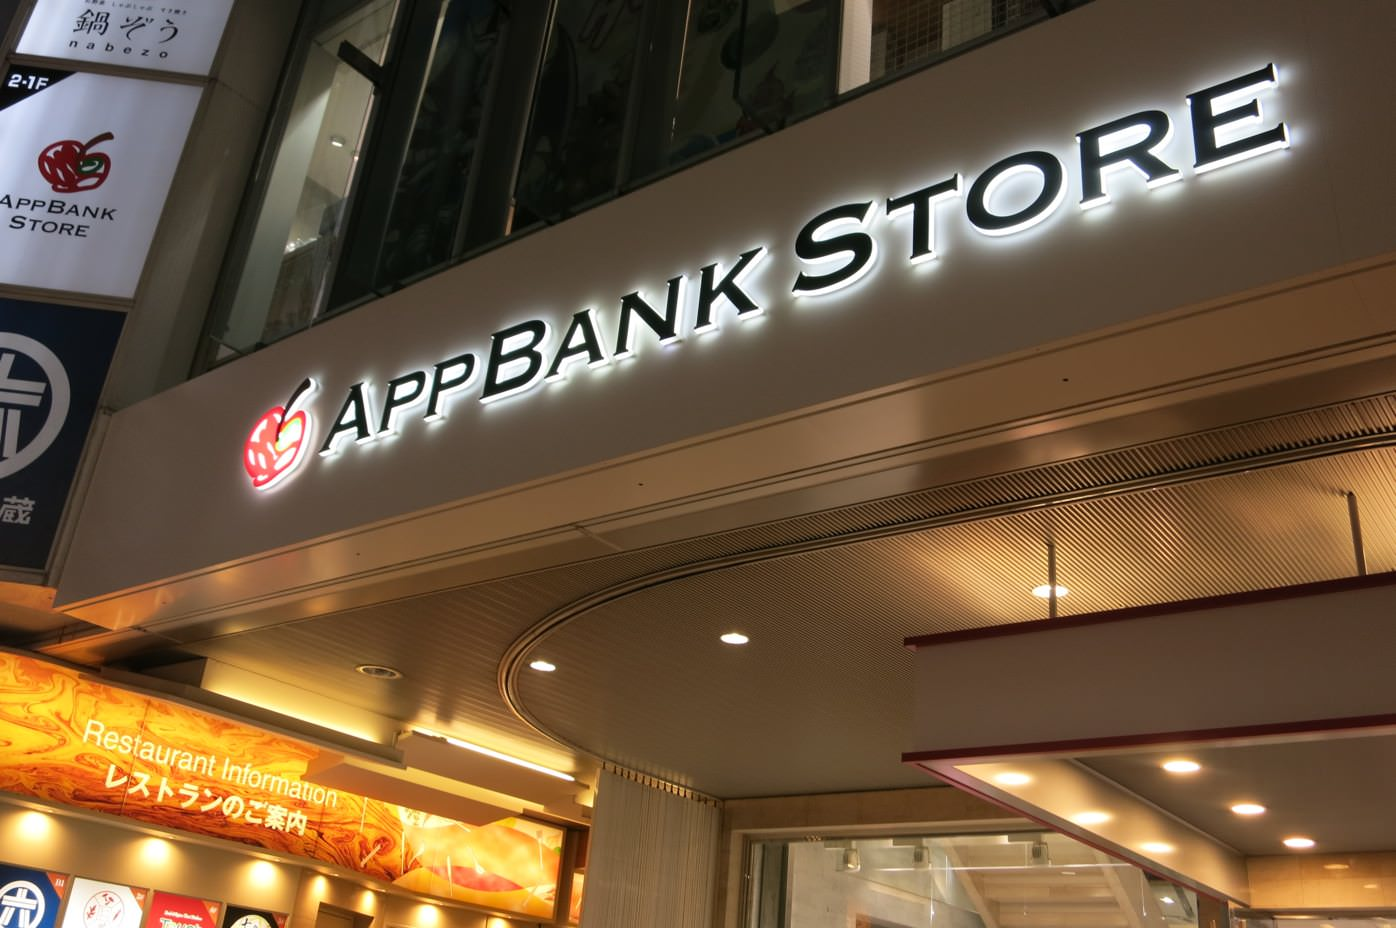 AppBank Store 新宿